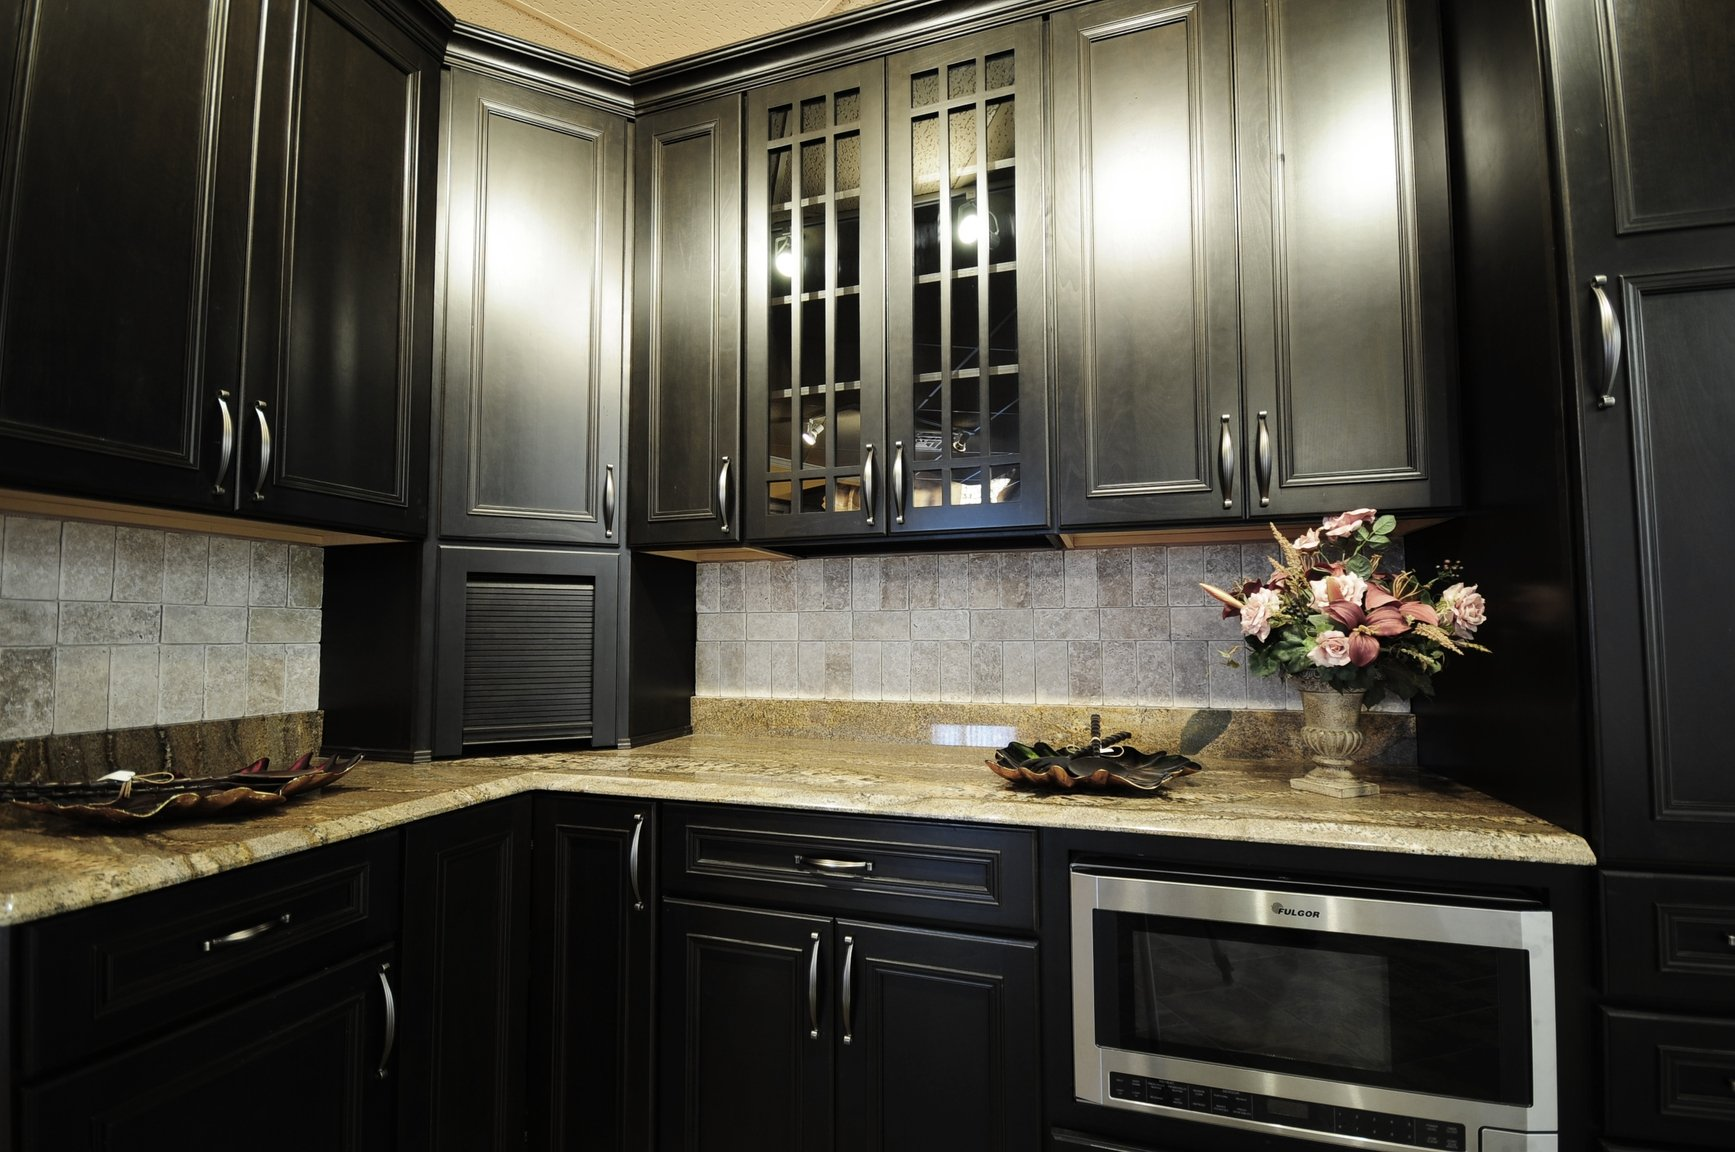 Kitchen cabinet refacing north vancouver - Kitchen Cabinets Surrey Bc Custom Kitchen Cabinets Vancouver